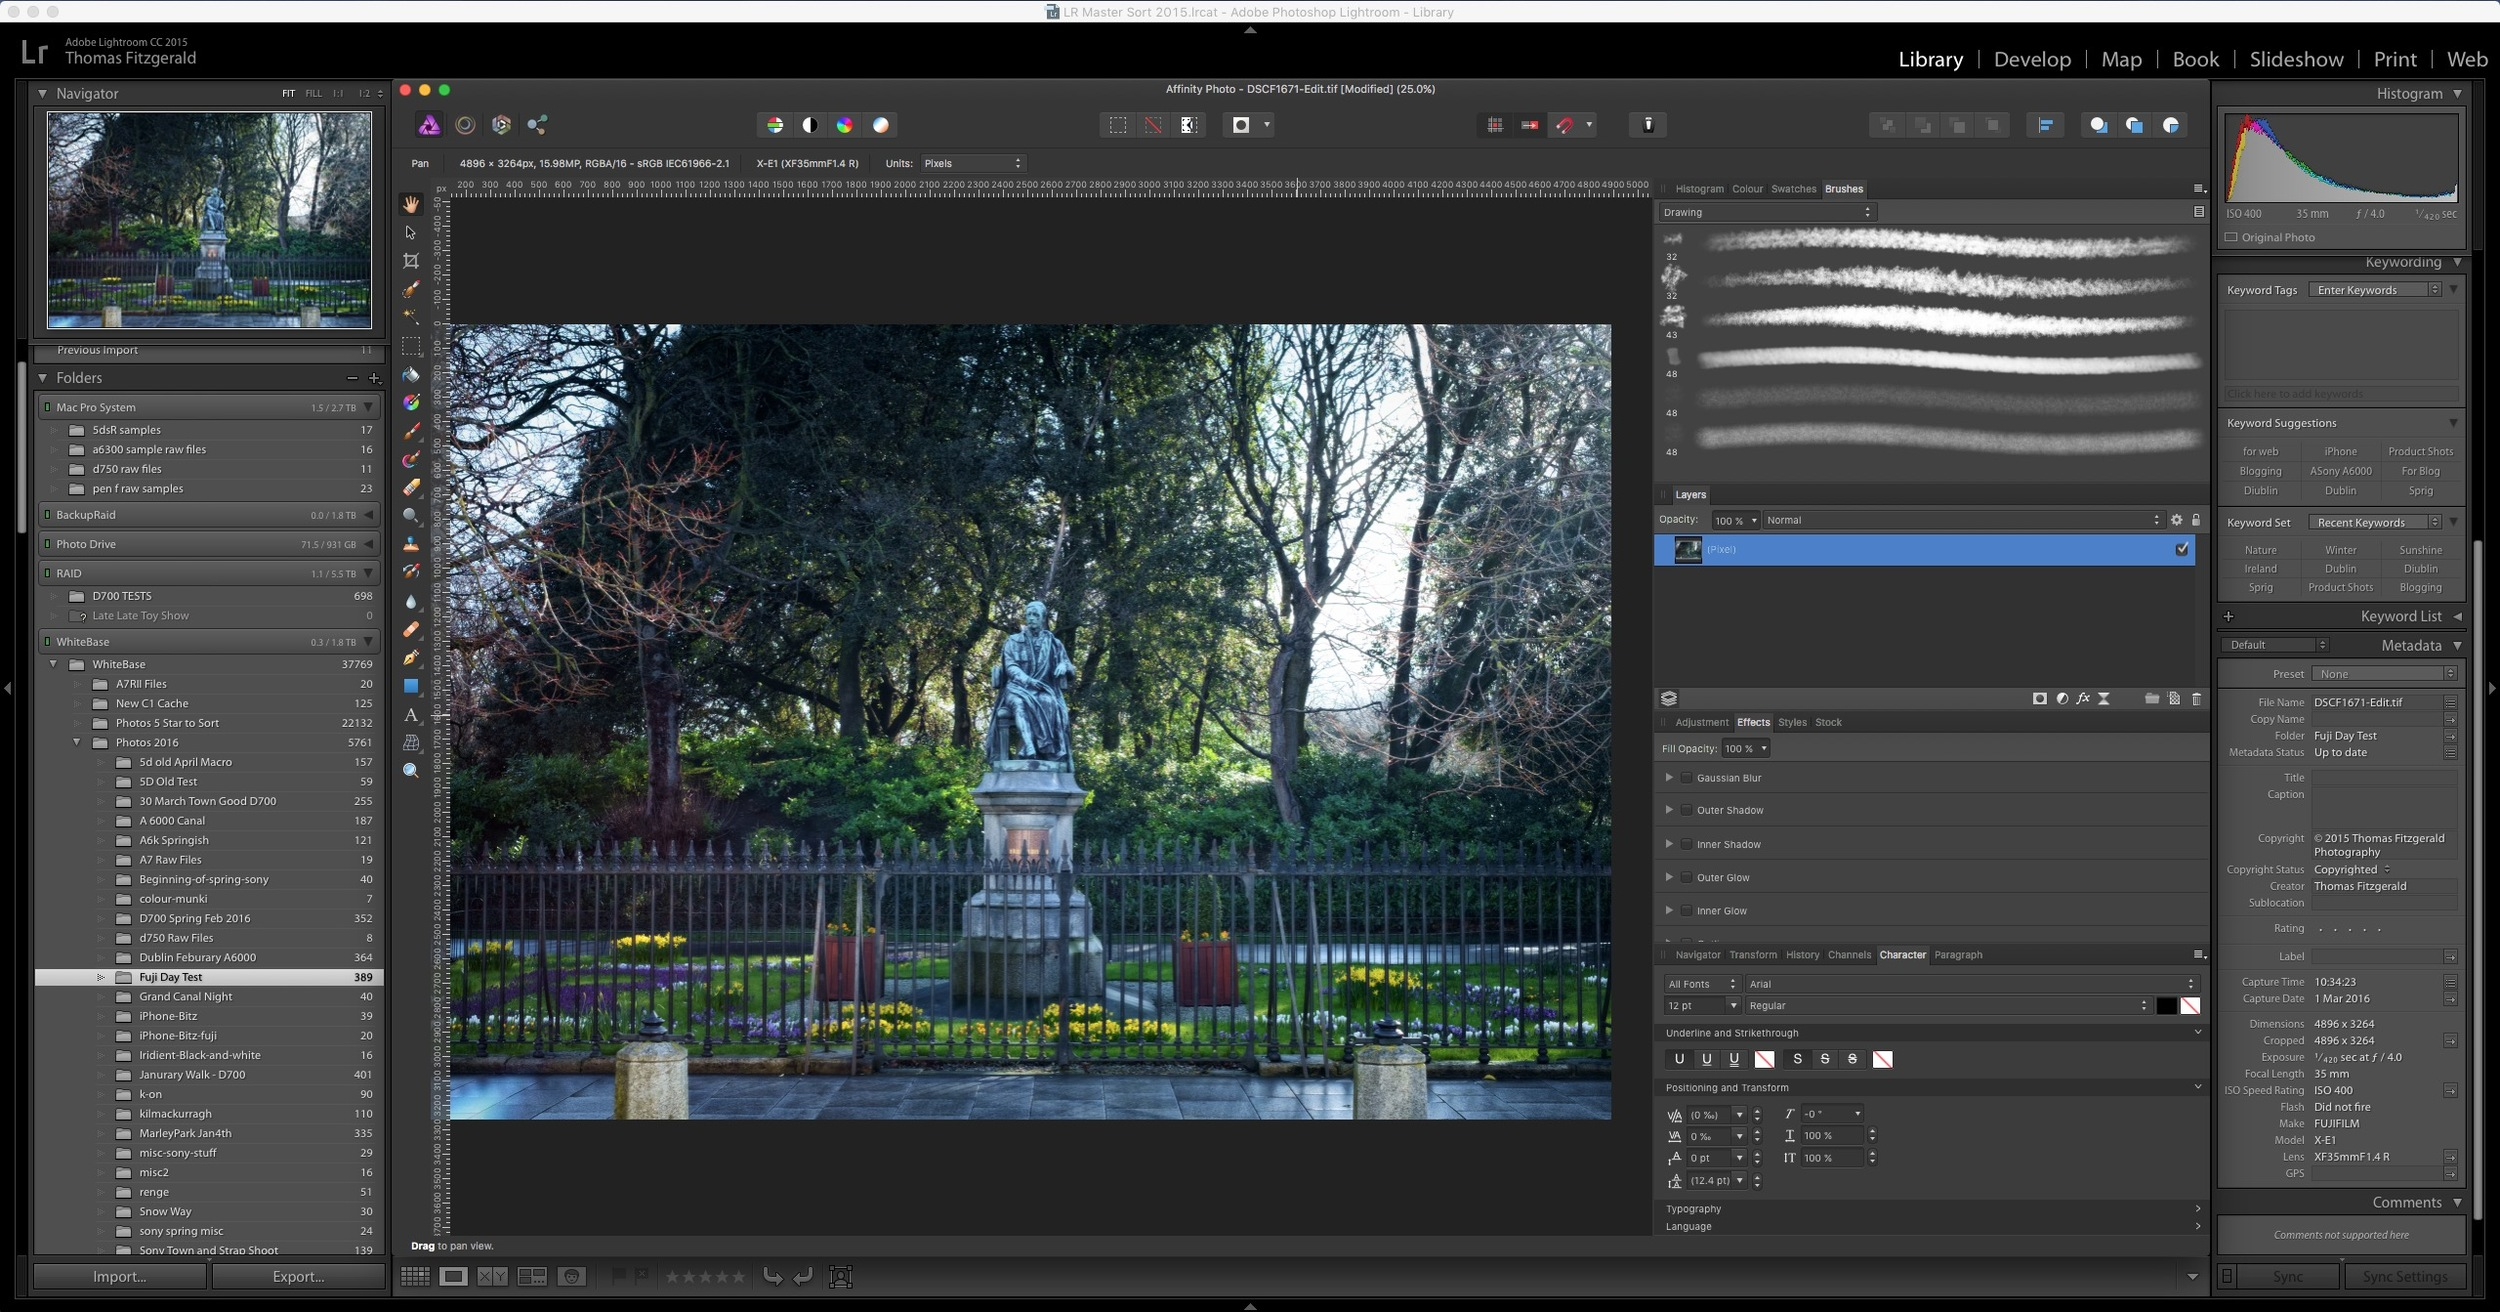 Especial Lightroom How To Use Affinity Photo As An External Editor Lightroom Thomasfitzgerald Photography How To Use Affinity Photo As An External Editor dpreview Affinity Photo Photoshop